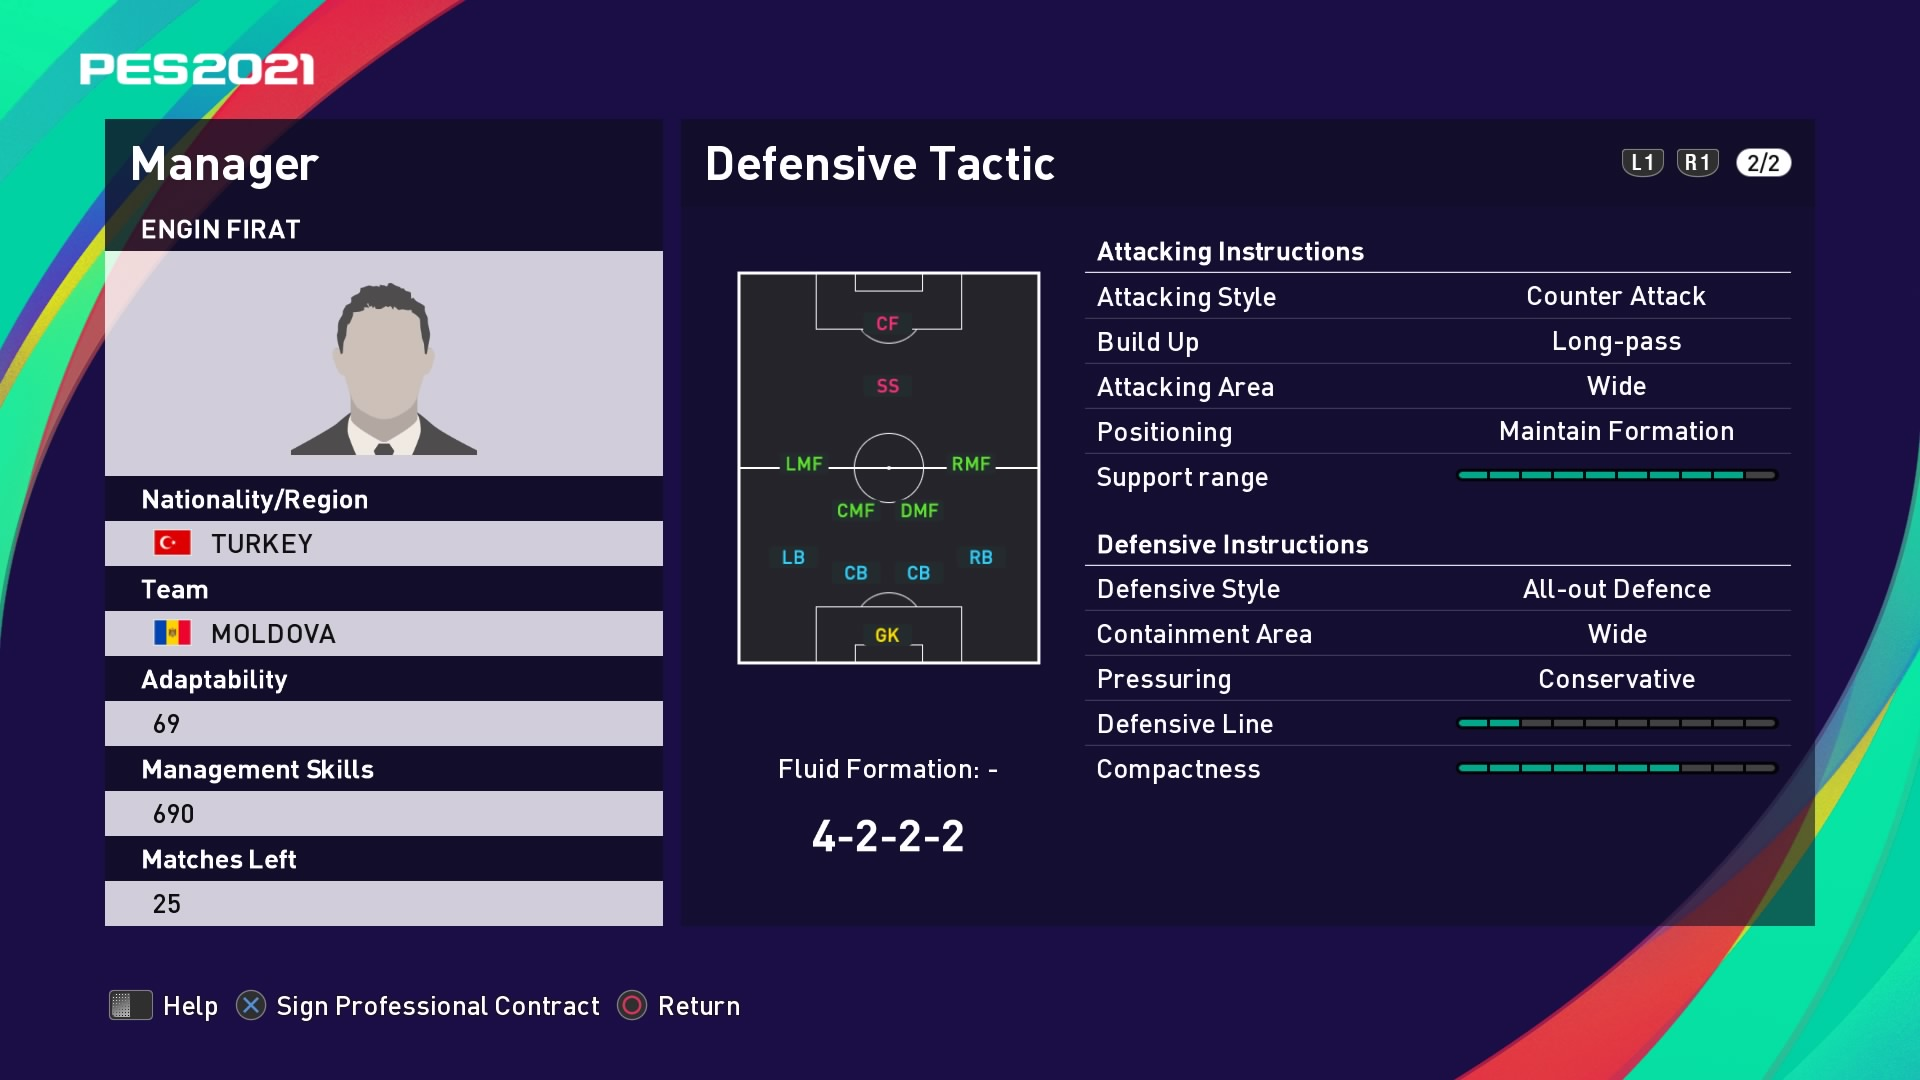 Engin Fırat Defensive Tactic in PES 2021 myClub